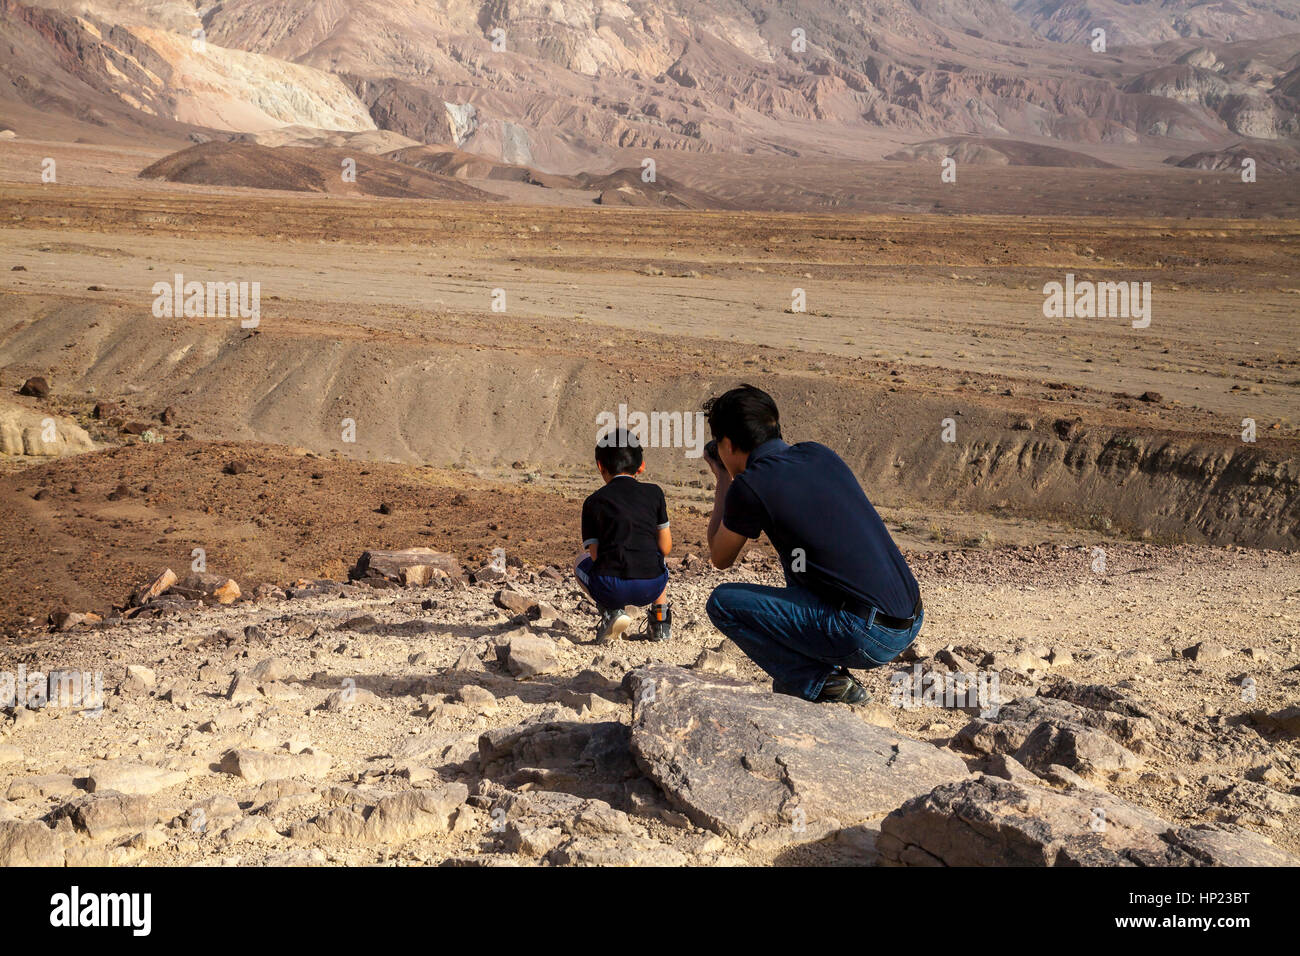 Father taking photos of son in Death Valley, California, USA - Stock Image